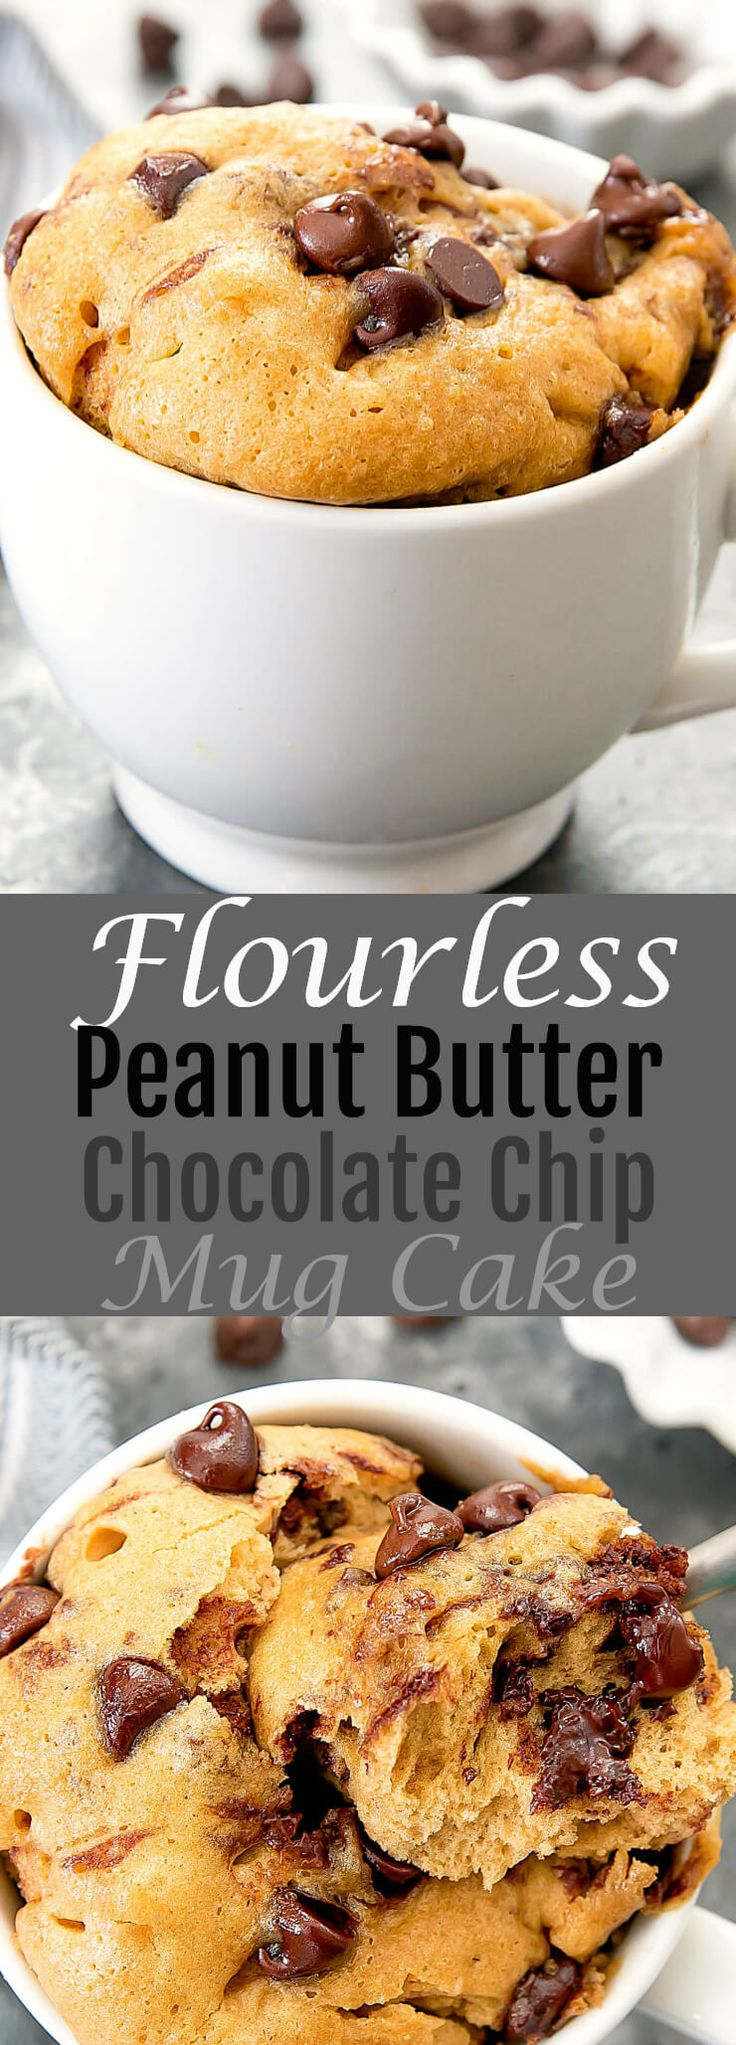 Flourless Peanut Butter Chocolate Chip Mug Cake. A single serving gluten free dessert that cooks in the microwave. Ready in about 5 minutes.